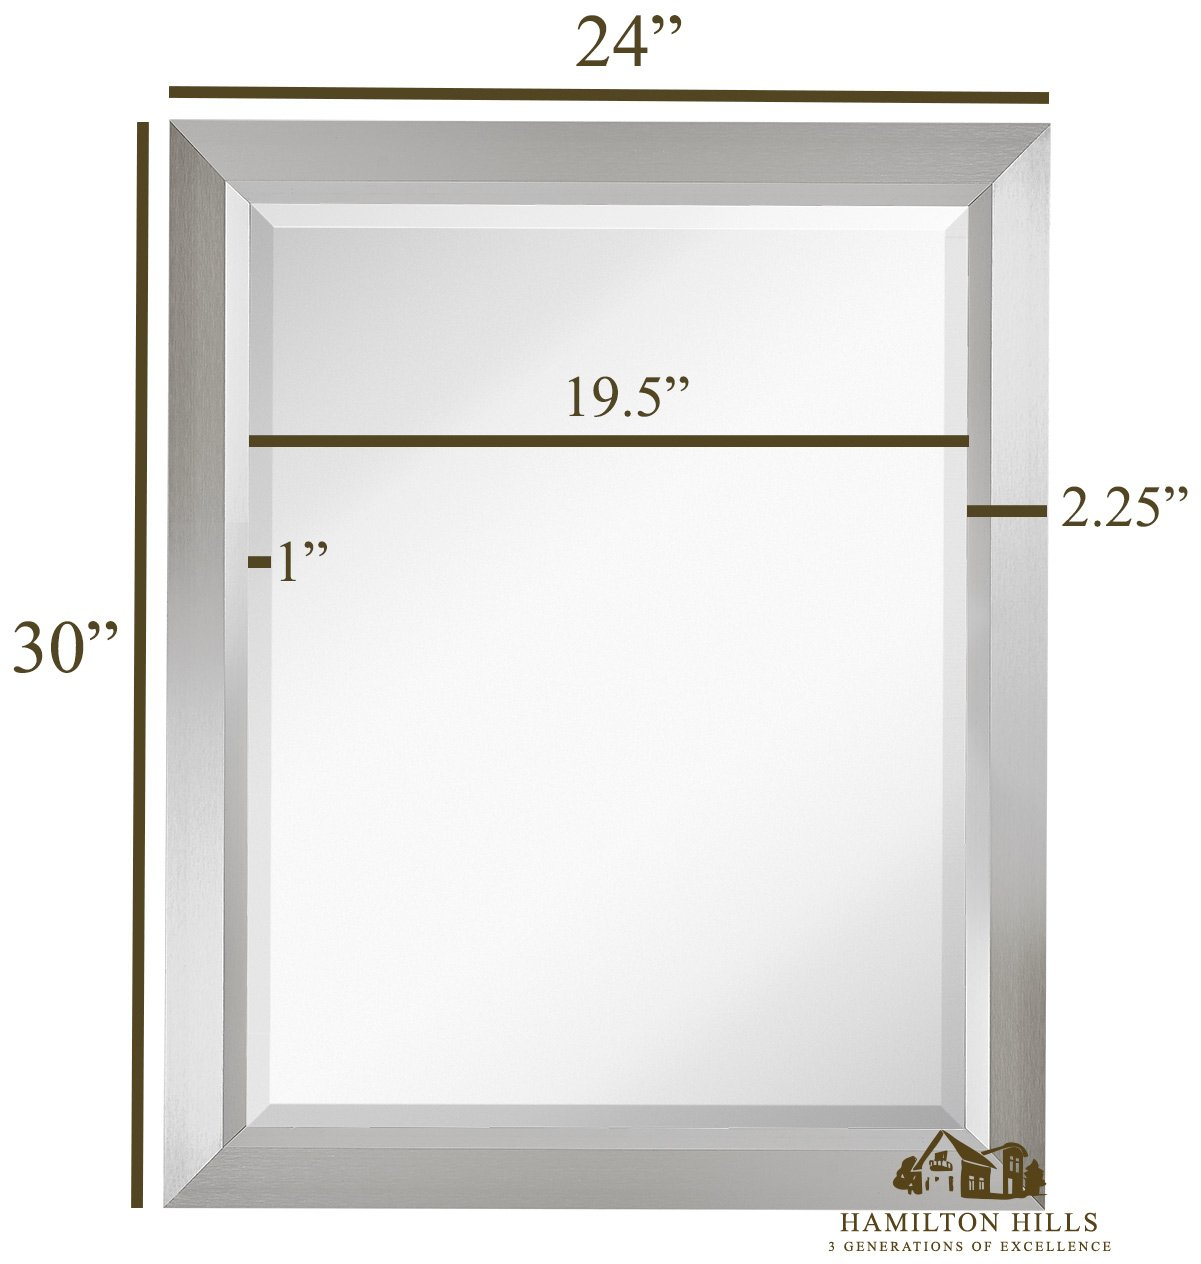 Premium Rectangular Brushed Aluminum Wall Mirror Contemporary Metal Frame Silver Backed Mirrored Glass Vanity, Bedroom or Bathroom Rectangle Hangs Horizontal or Vertical 24 x 30